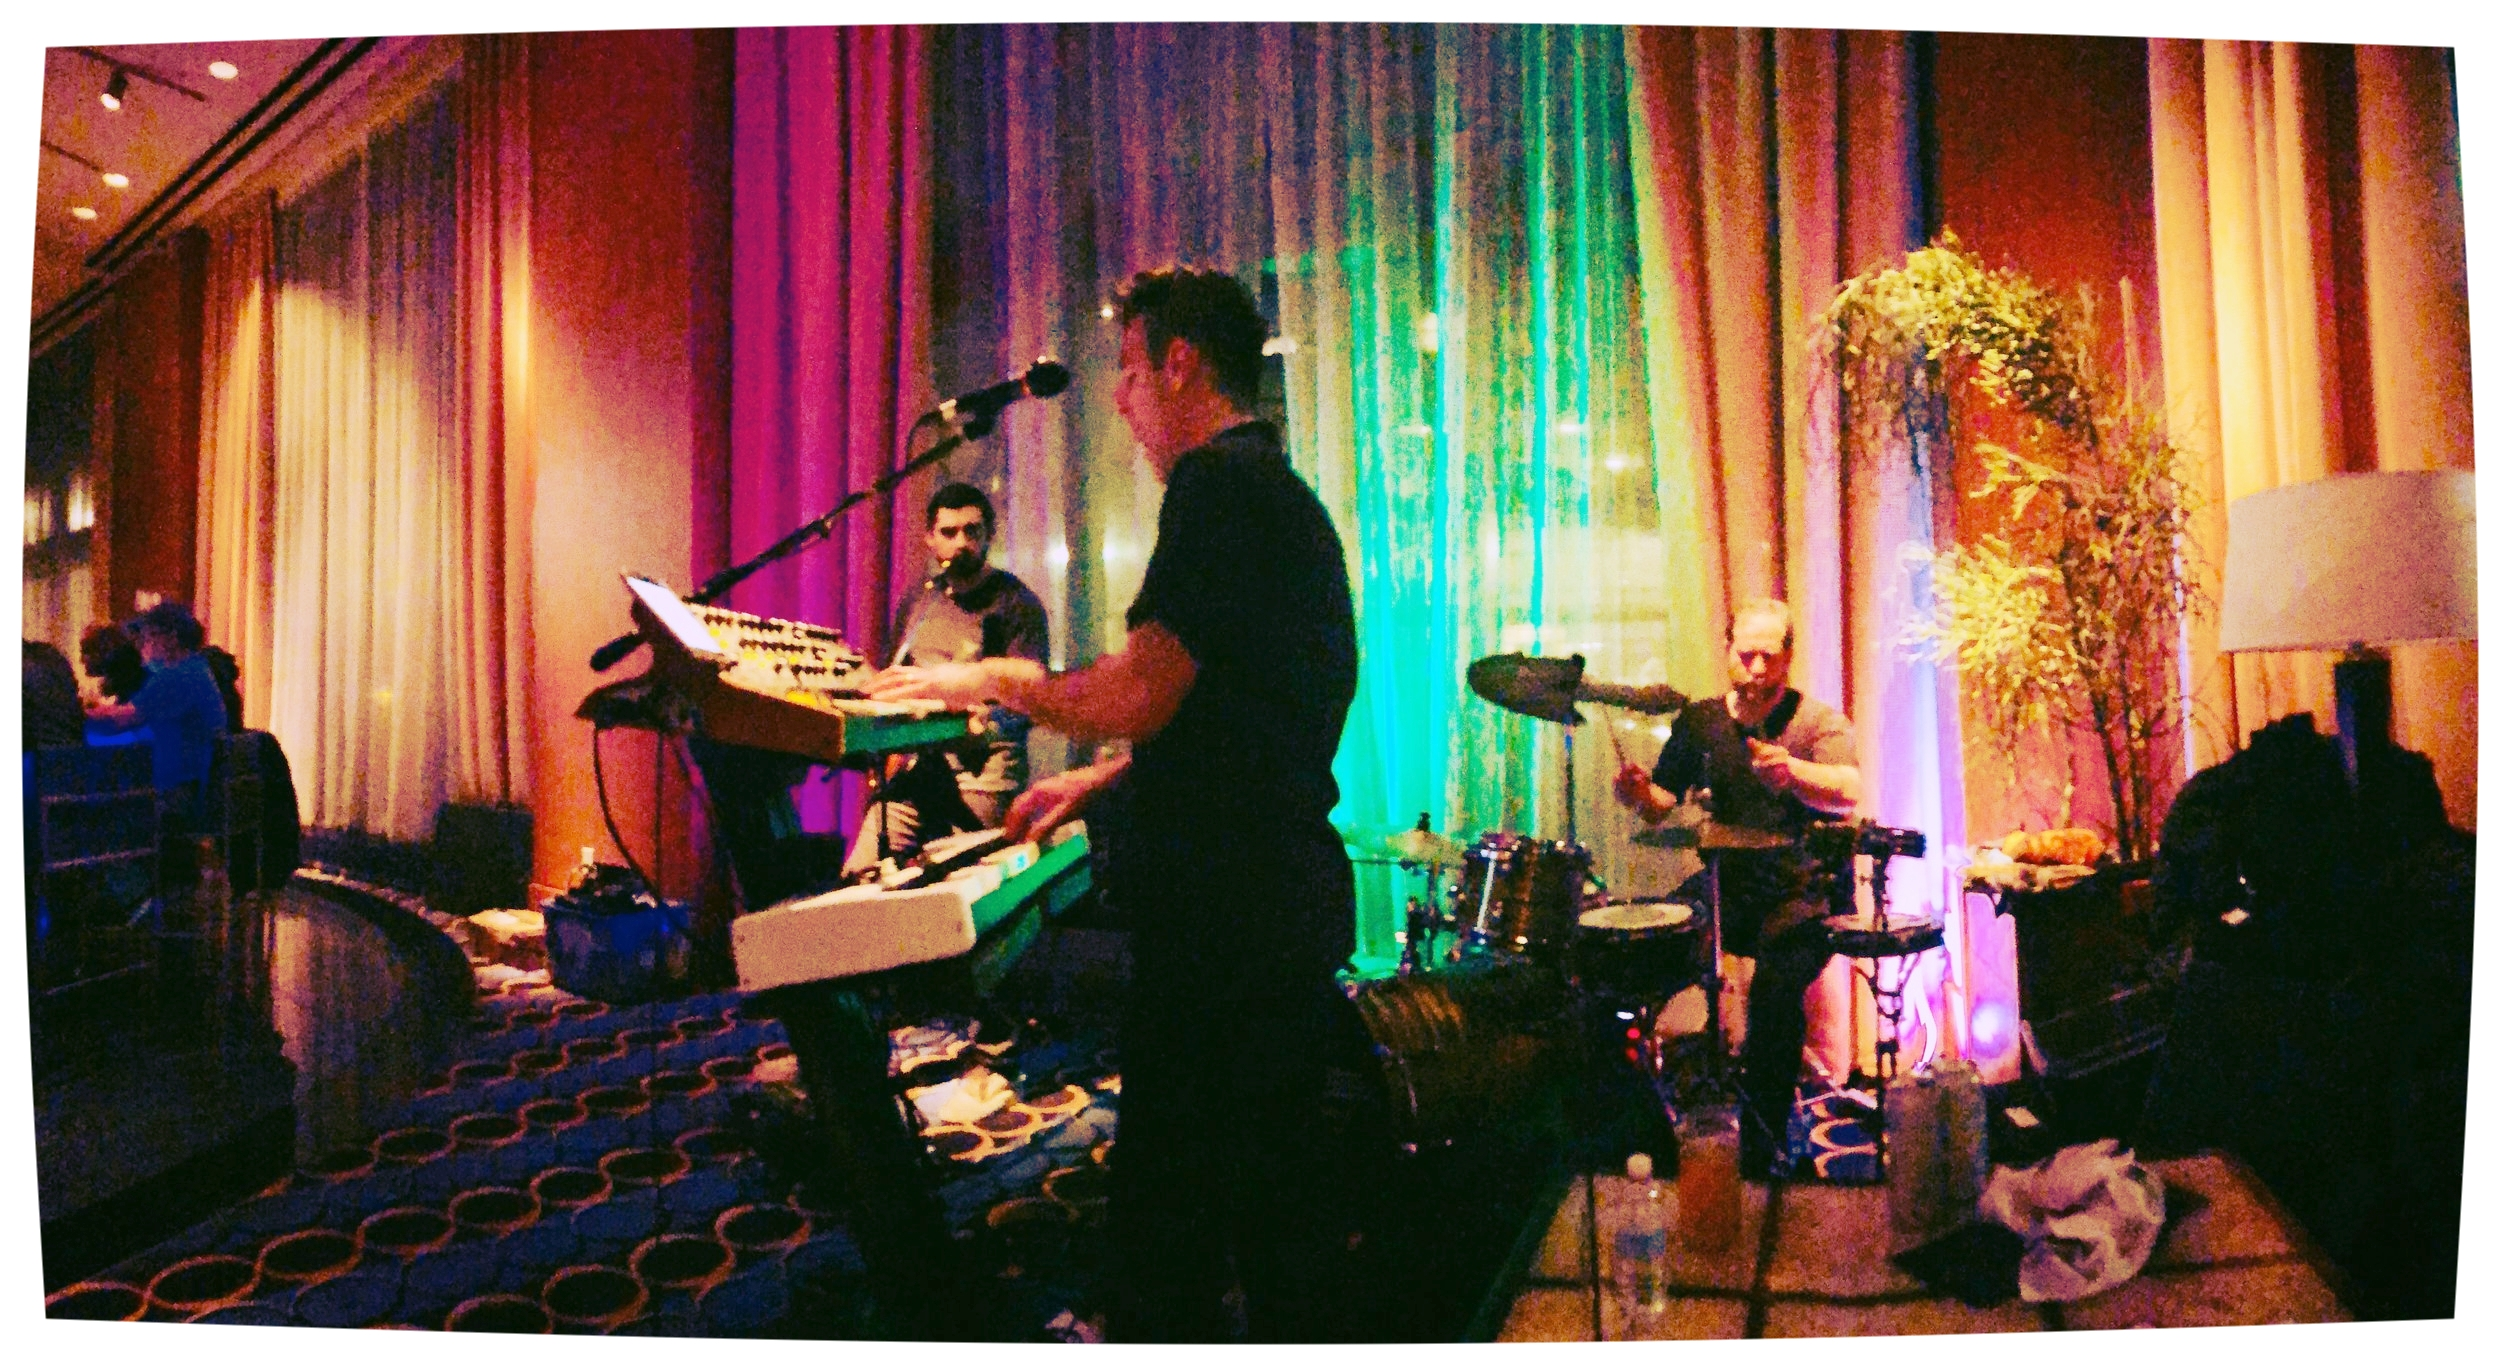 Mossy Peak's debut show at the Renaissance Waterfront Hotel, Boston - 4/7/18